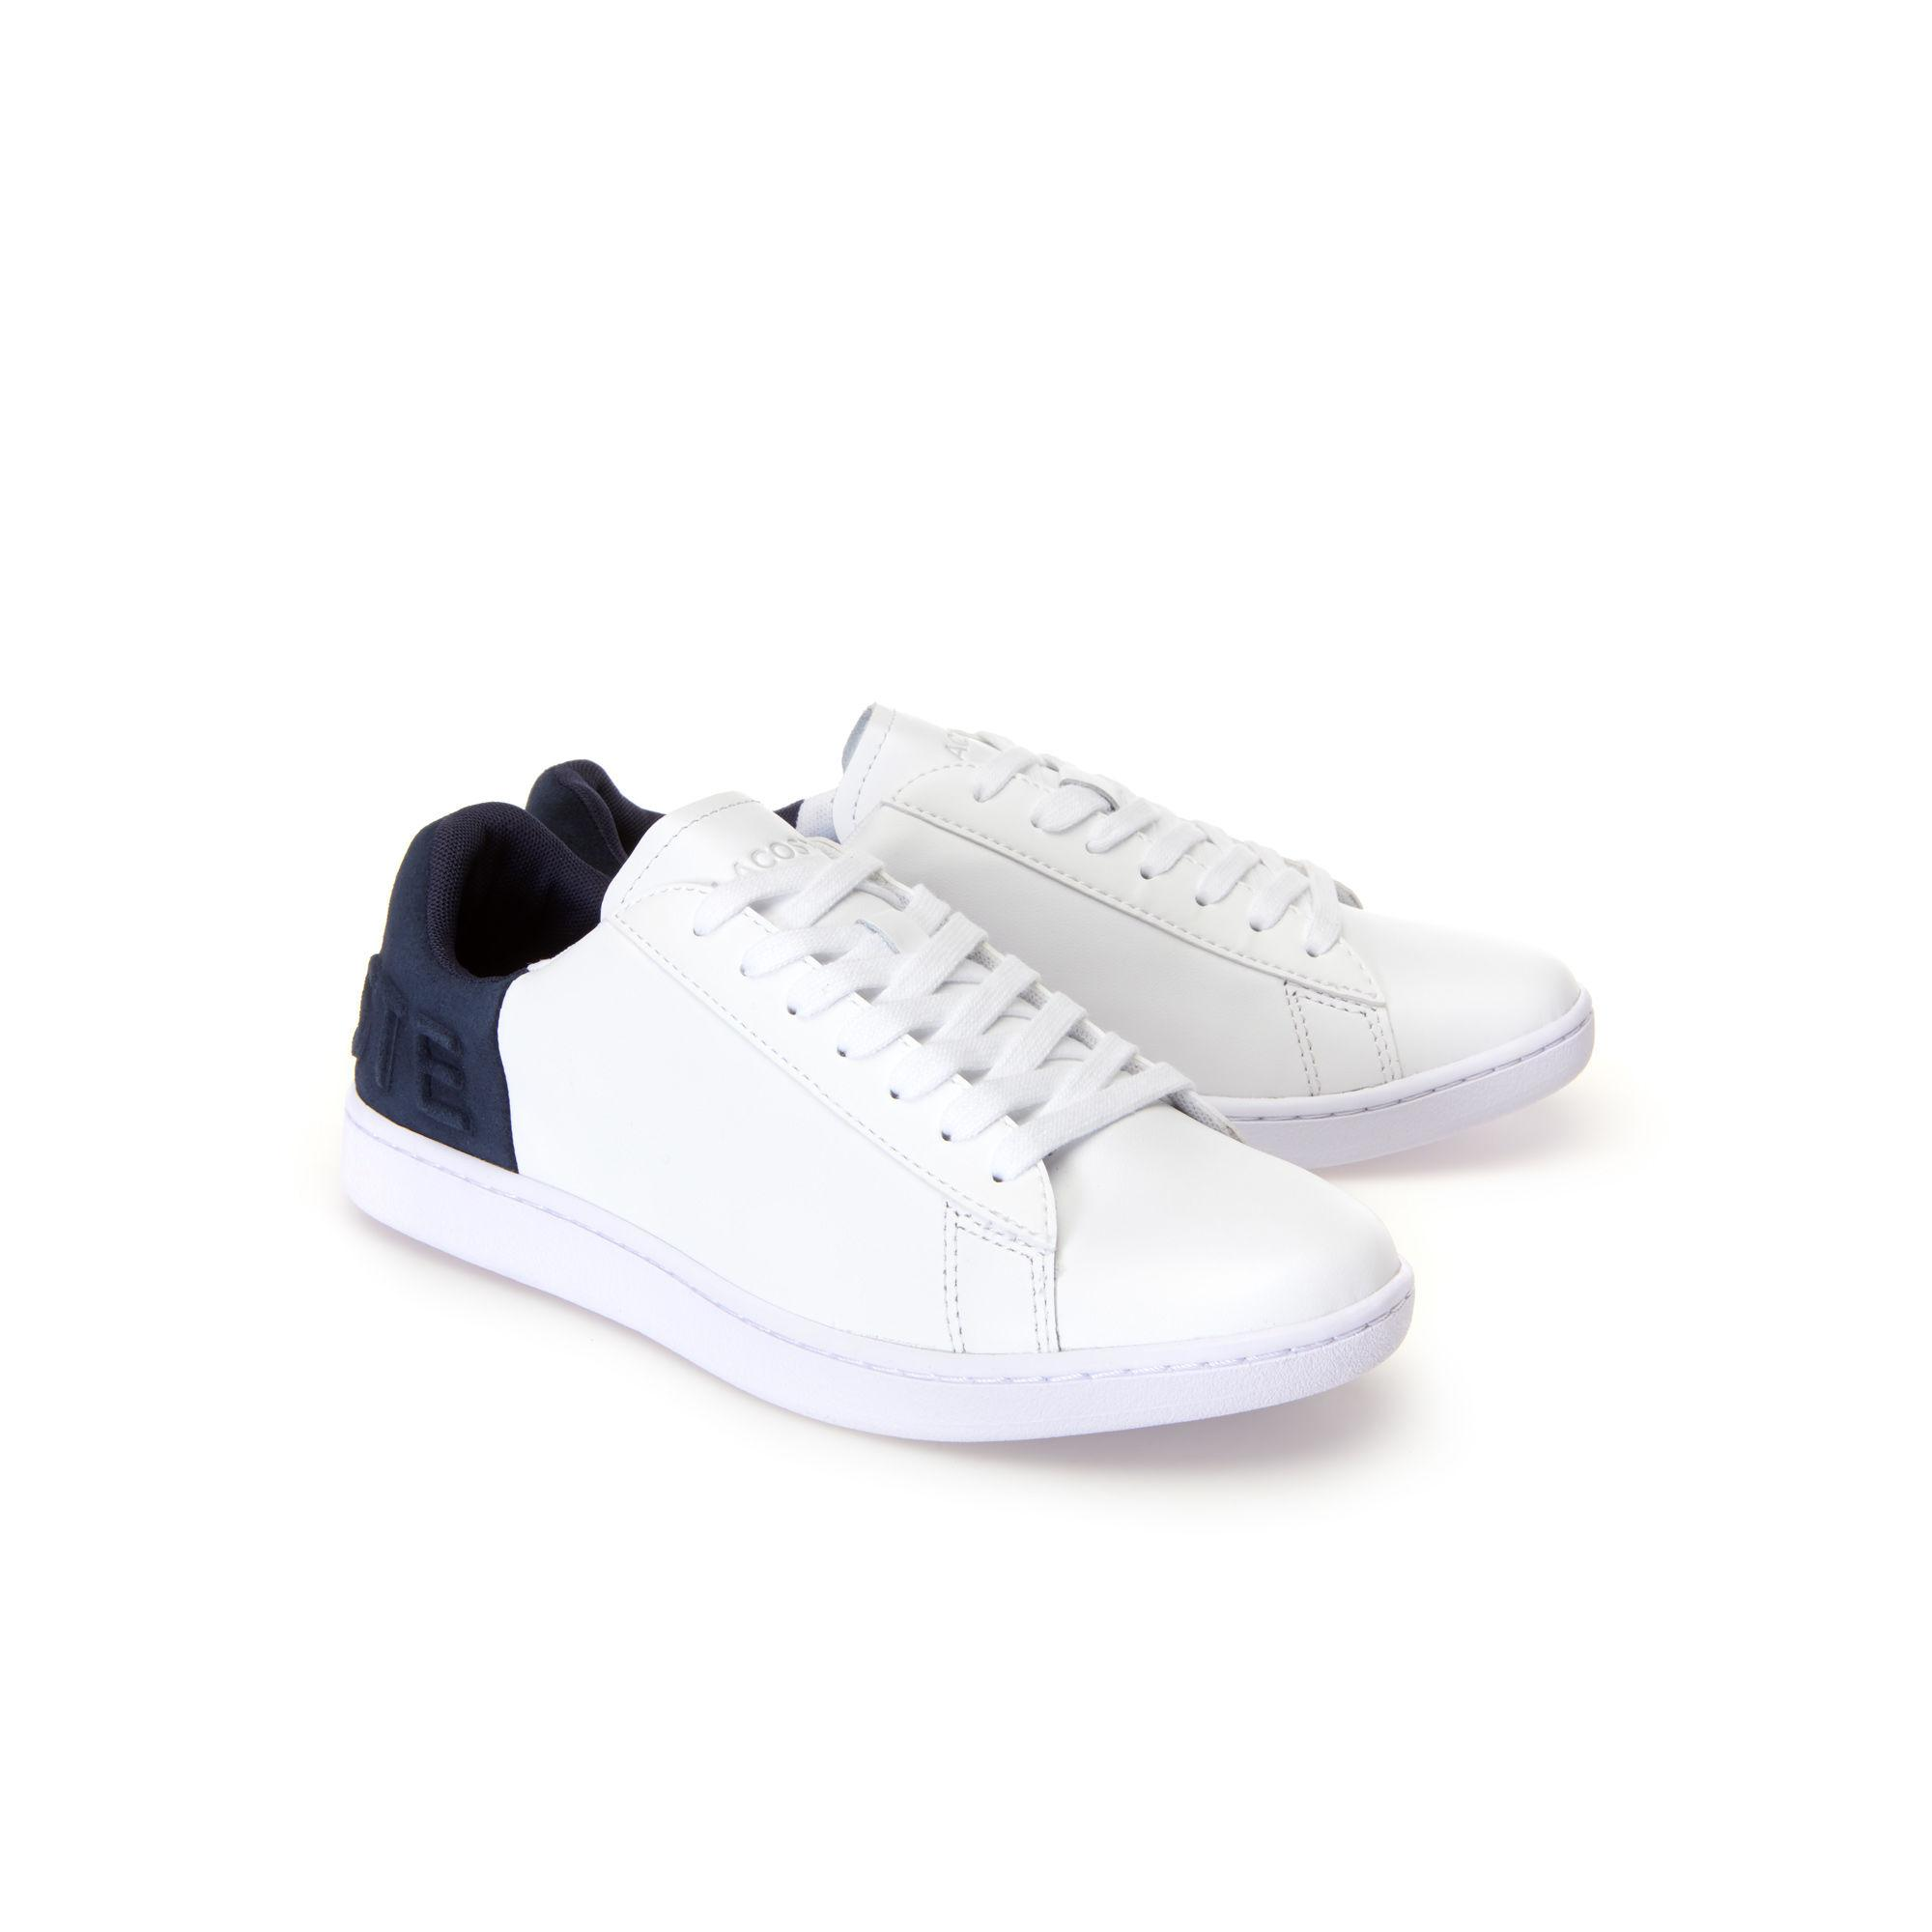 bb71369febb318 Lacoste - Multicolor Carnaby Evo Colourblock Leather Trainers - Lyst